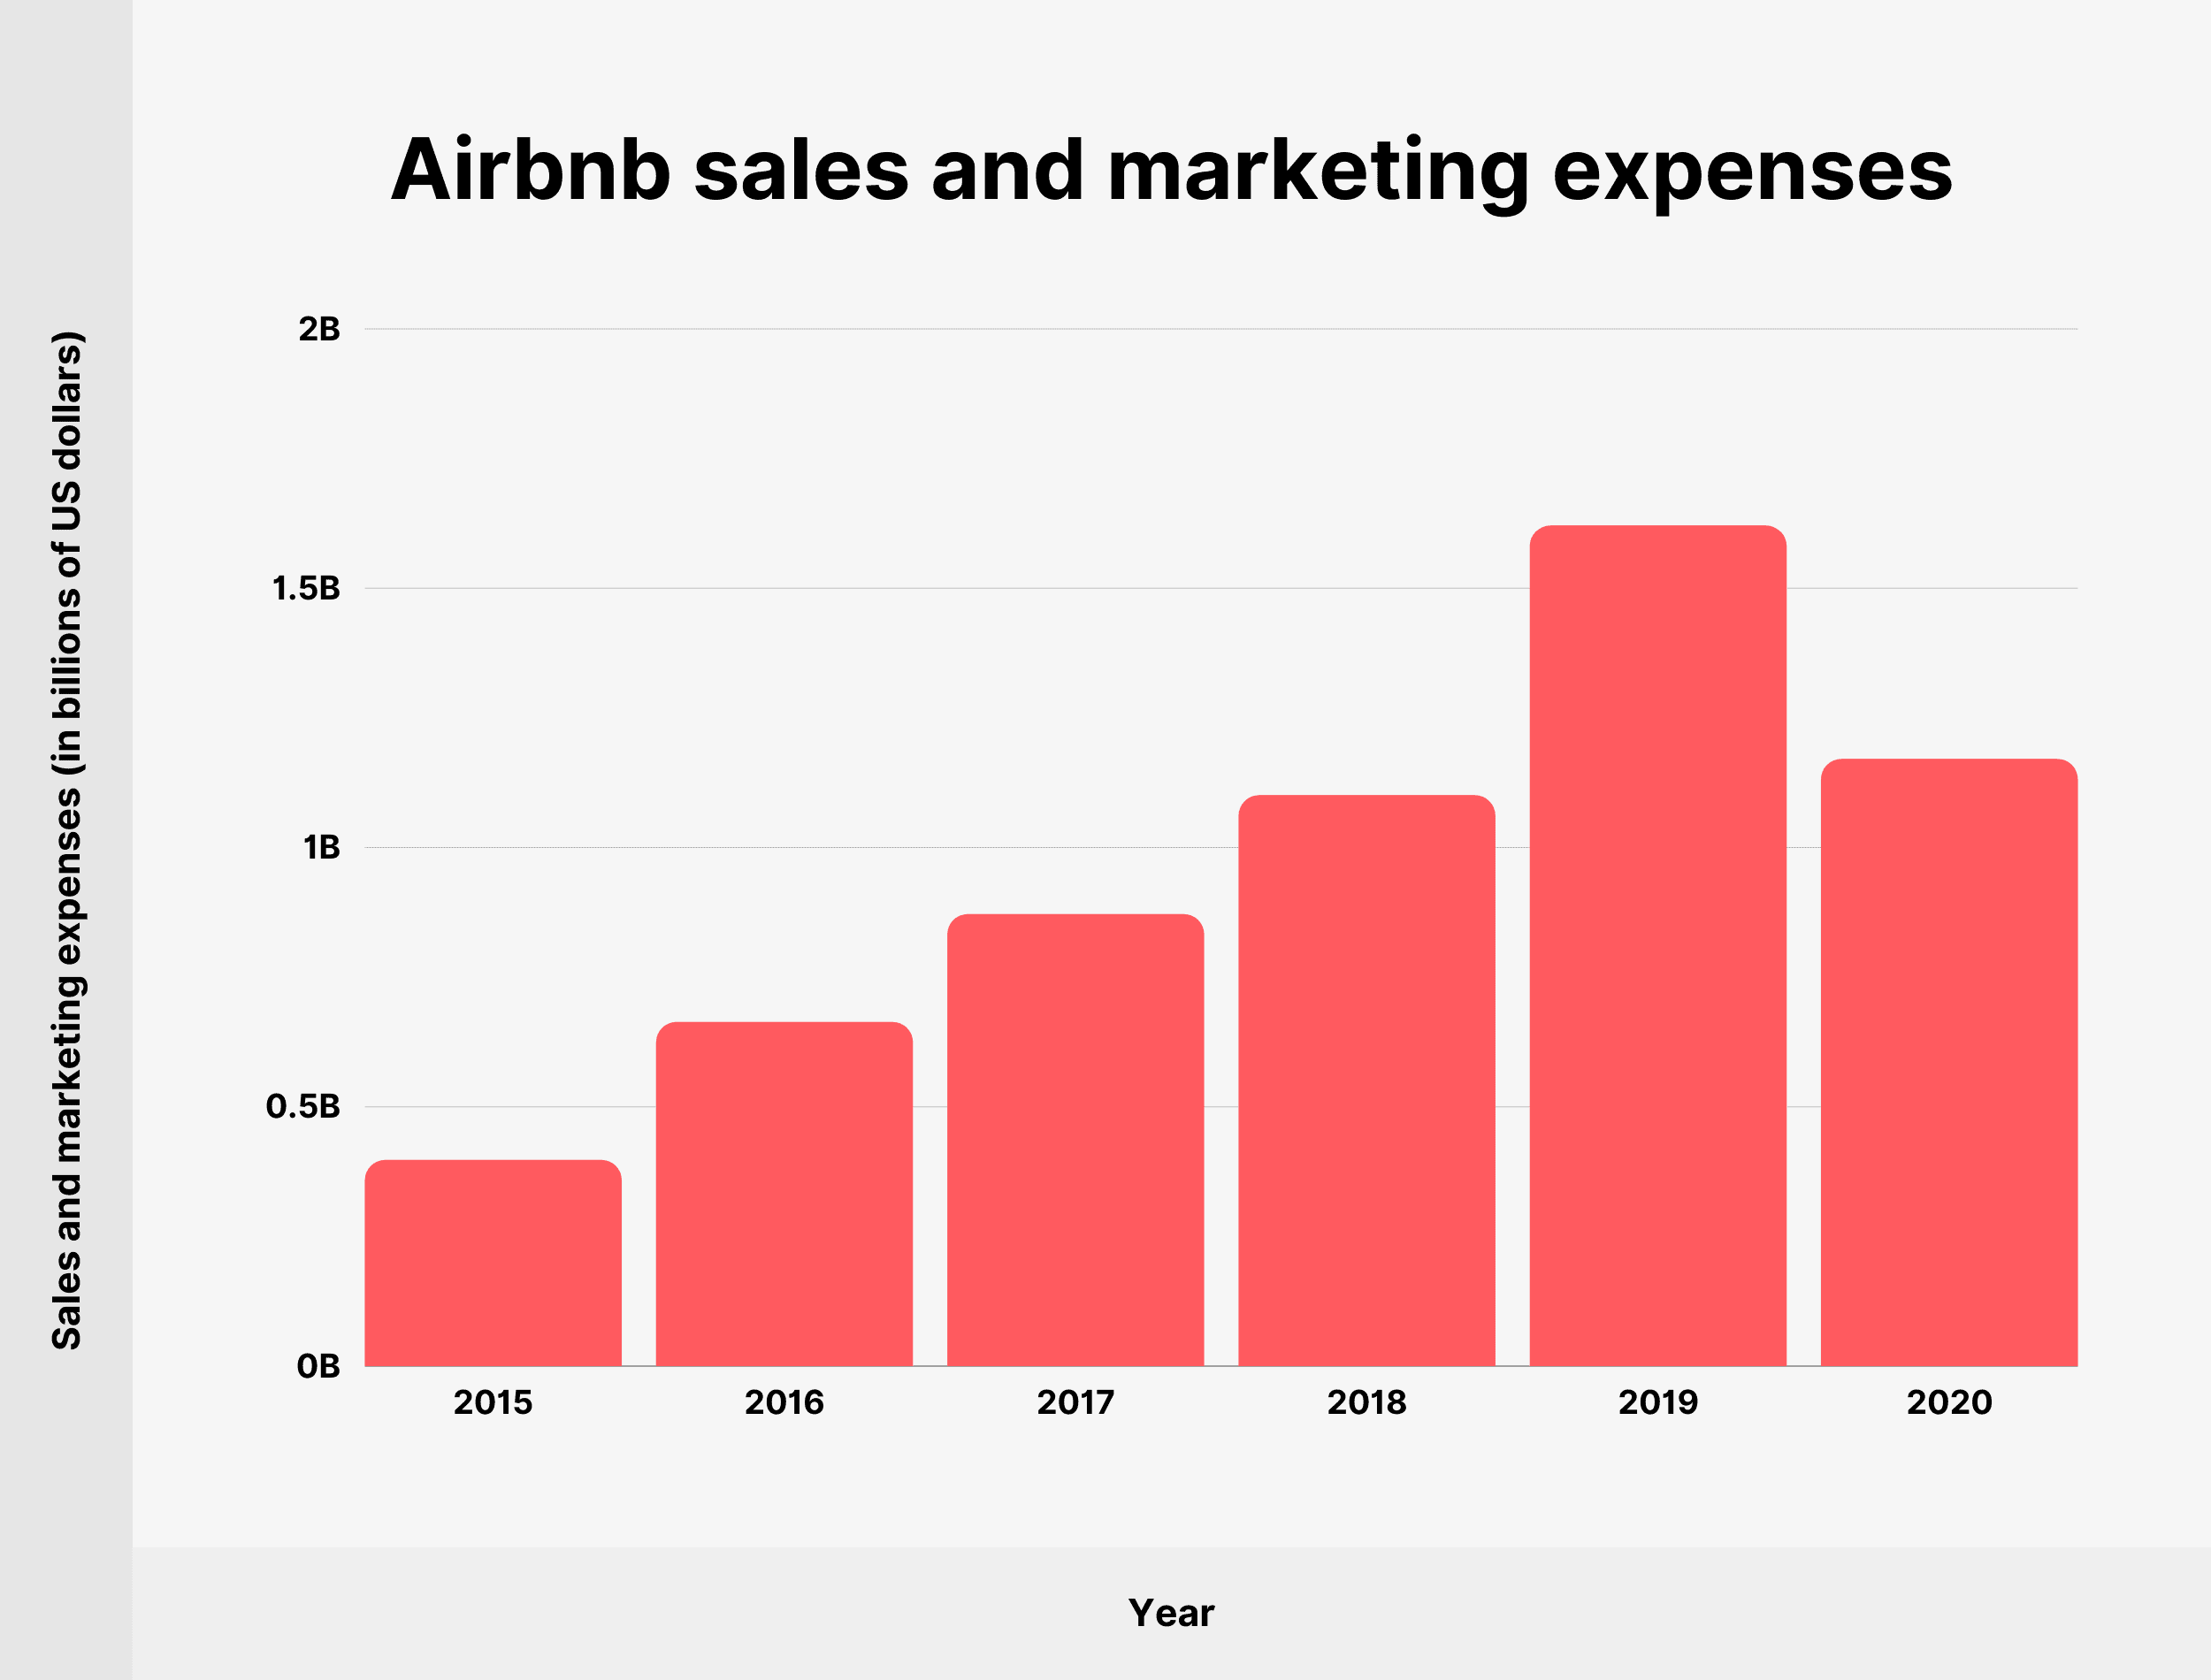 Airbnb sales and marketing expenses